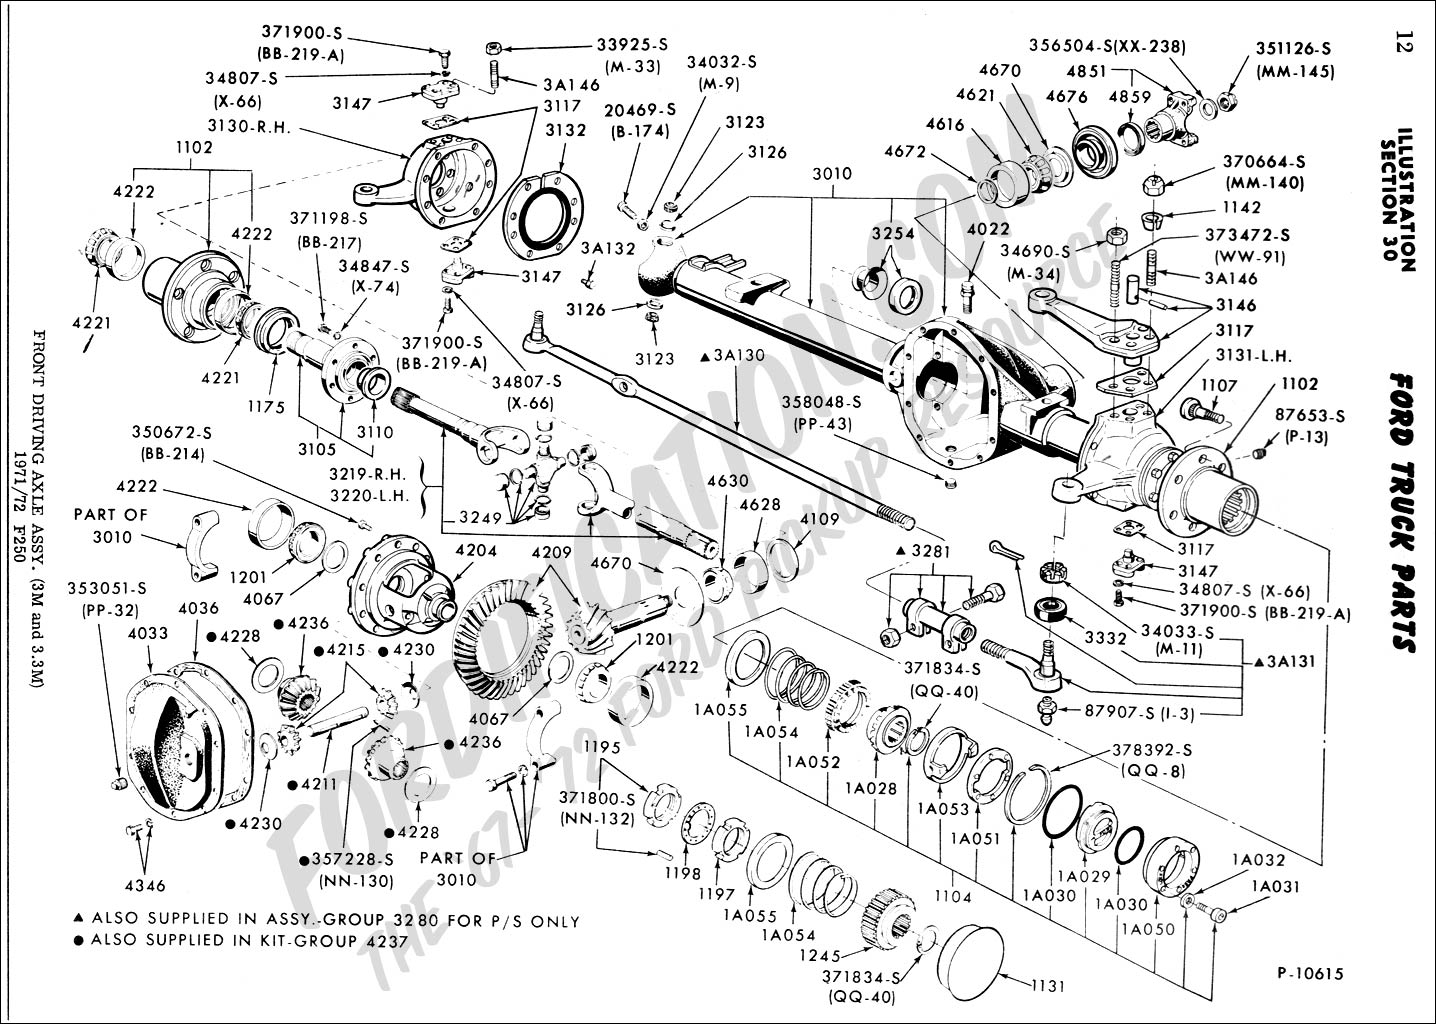 front end diagram ethernet crossover cable wiring axle assembly